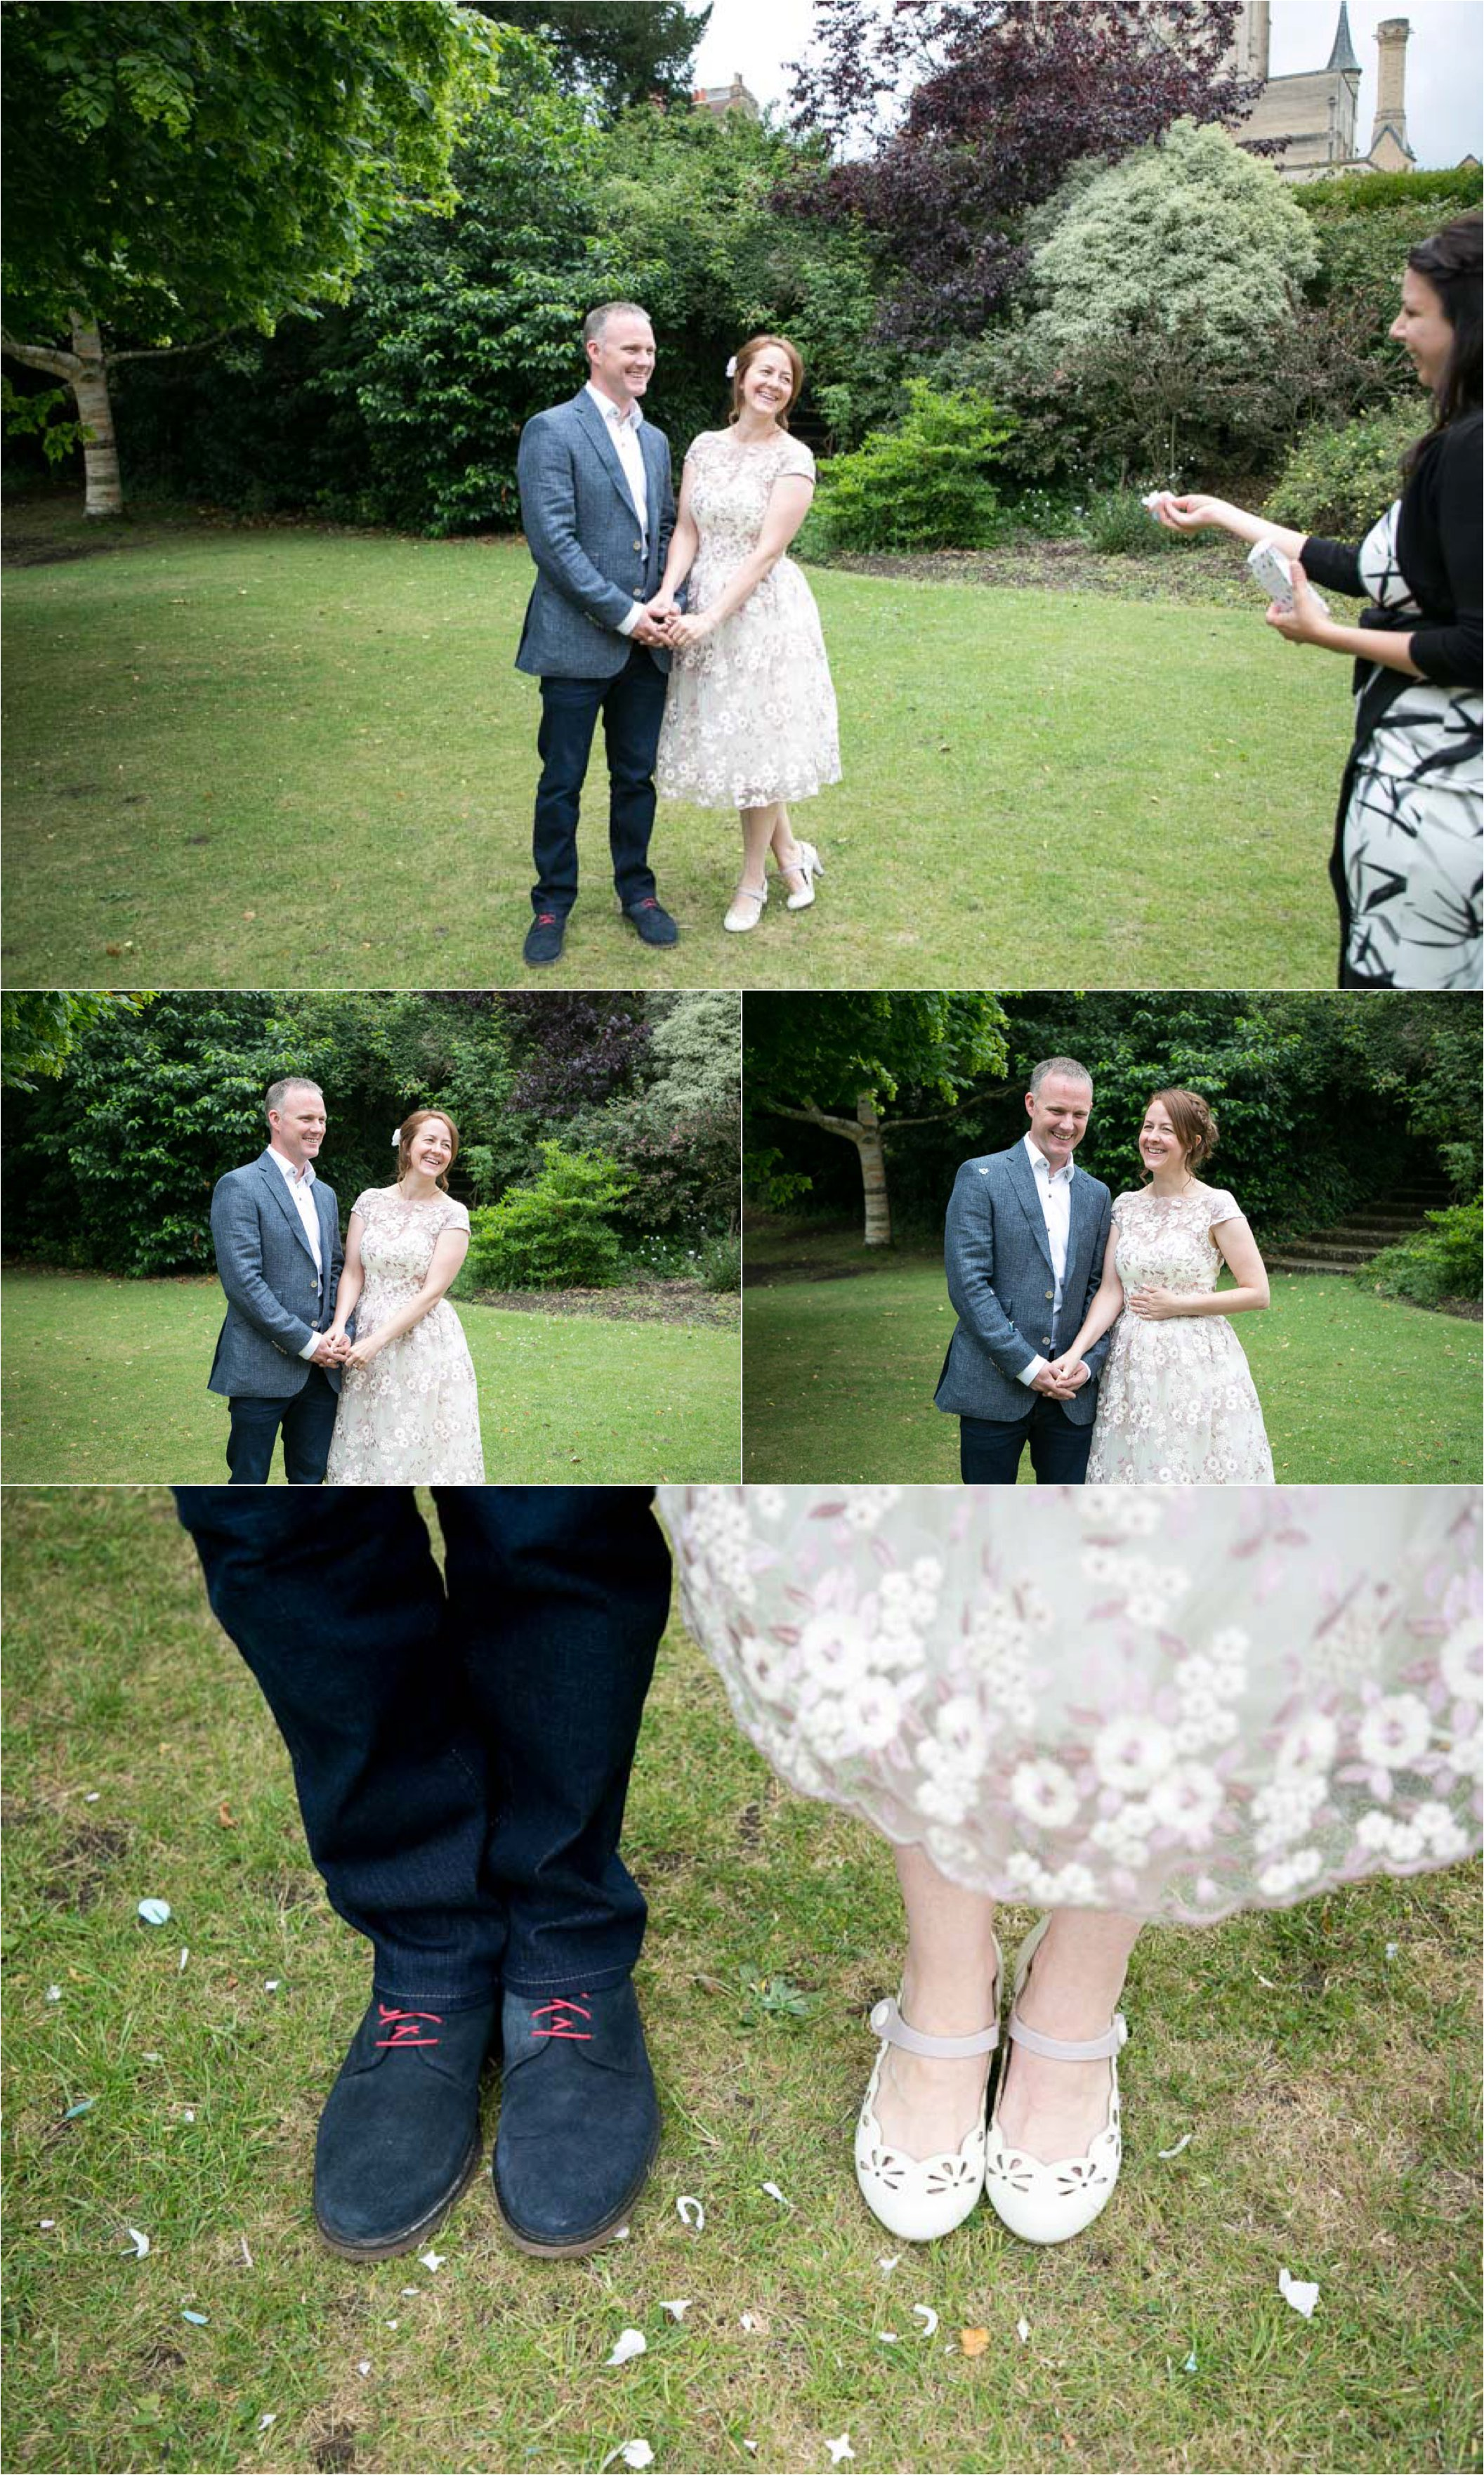 intimate elopement wedding photography in the abbey gardens, bury st edmunds